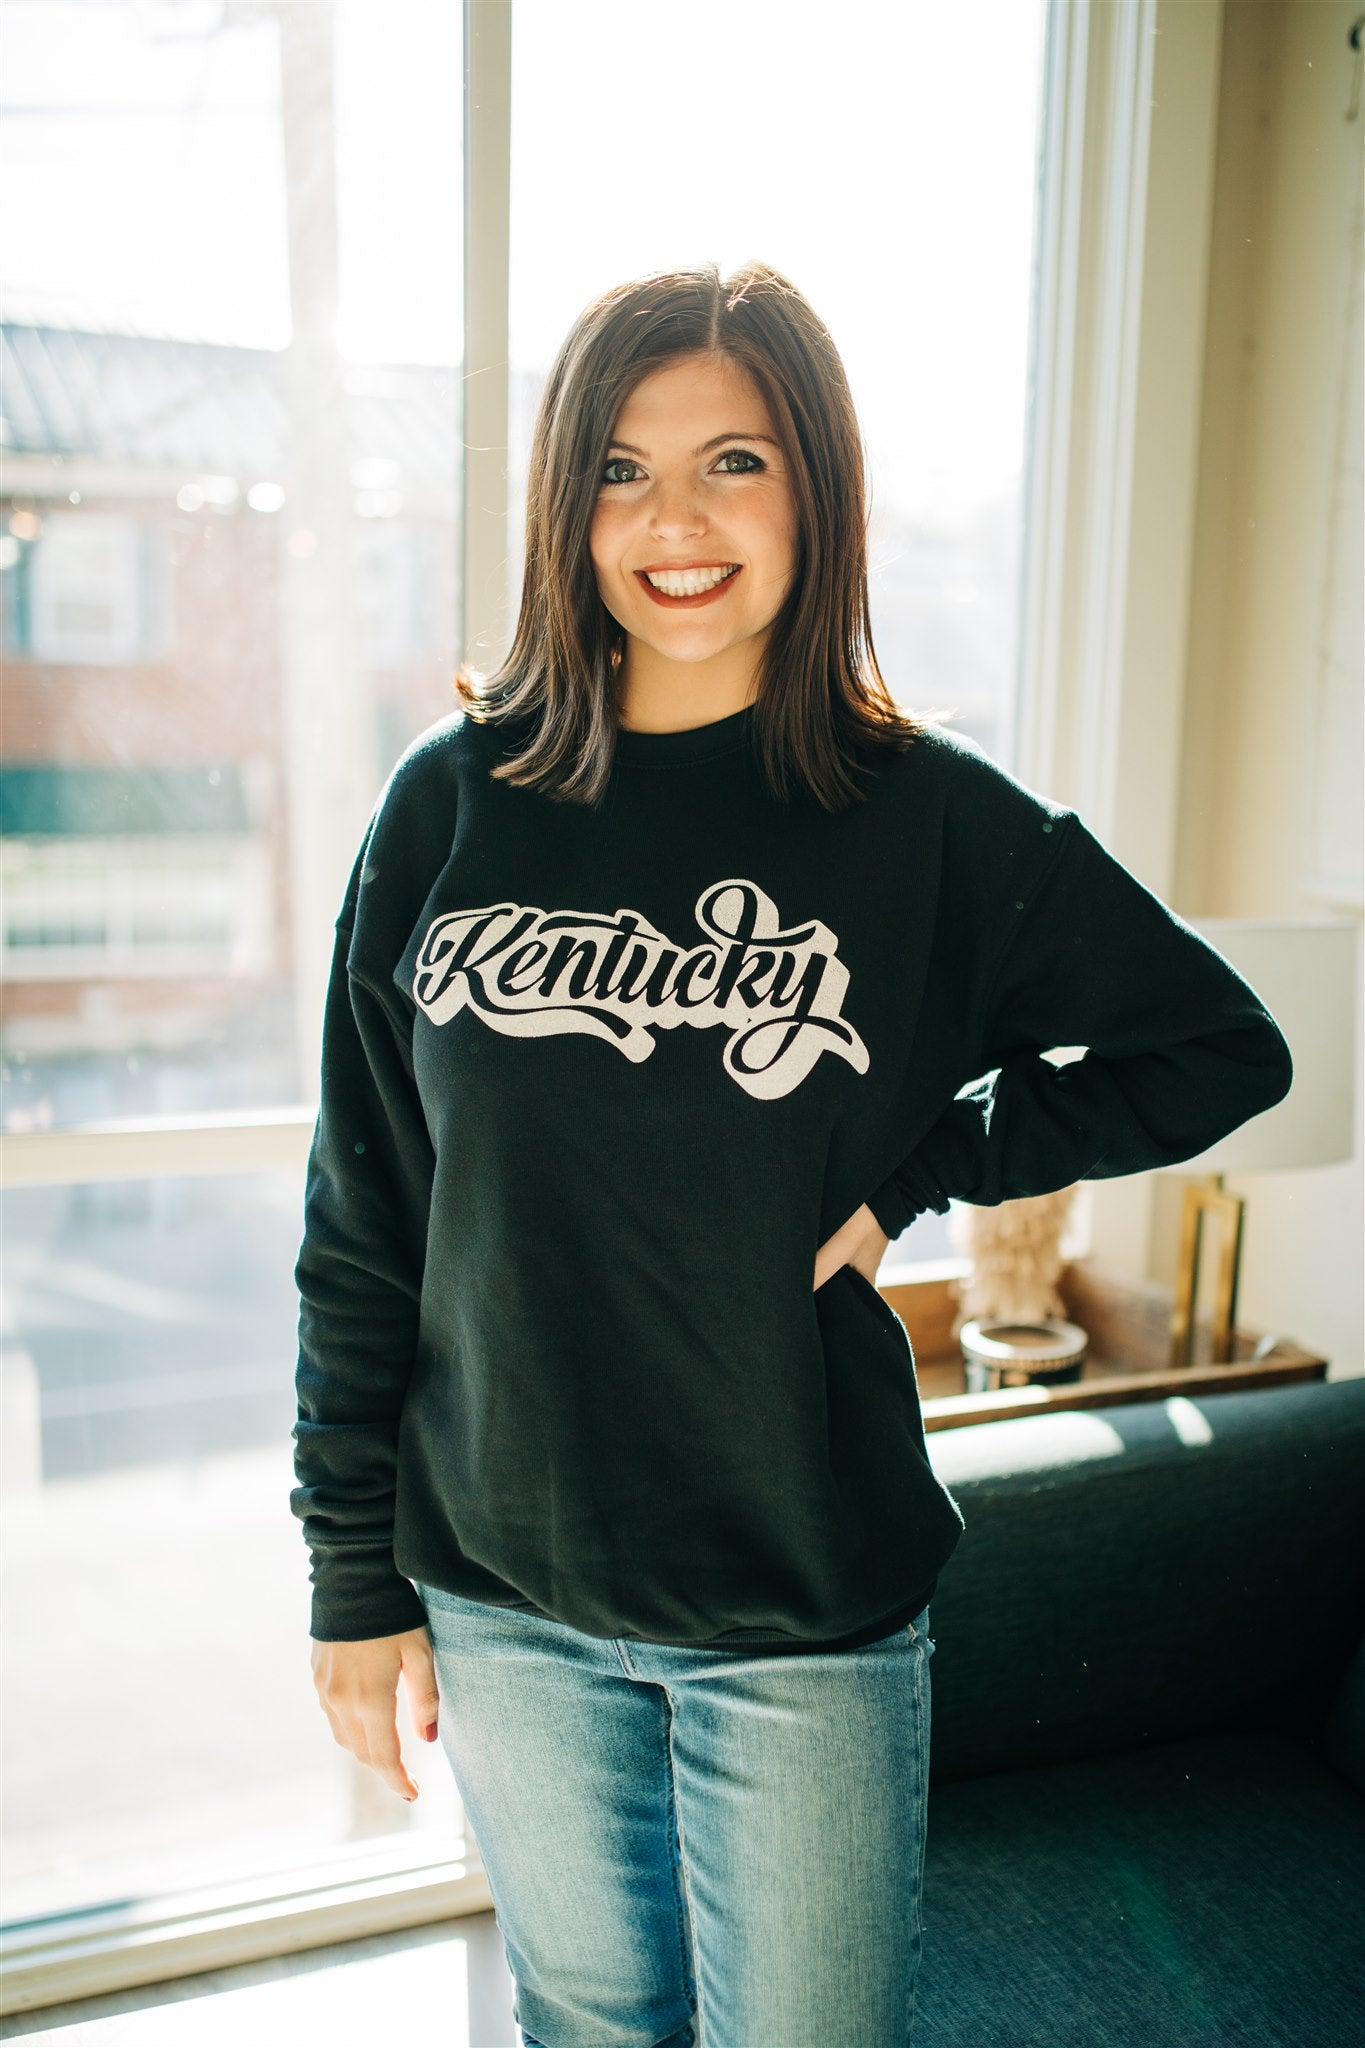 Kentucky Fleece Pullover - Black